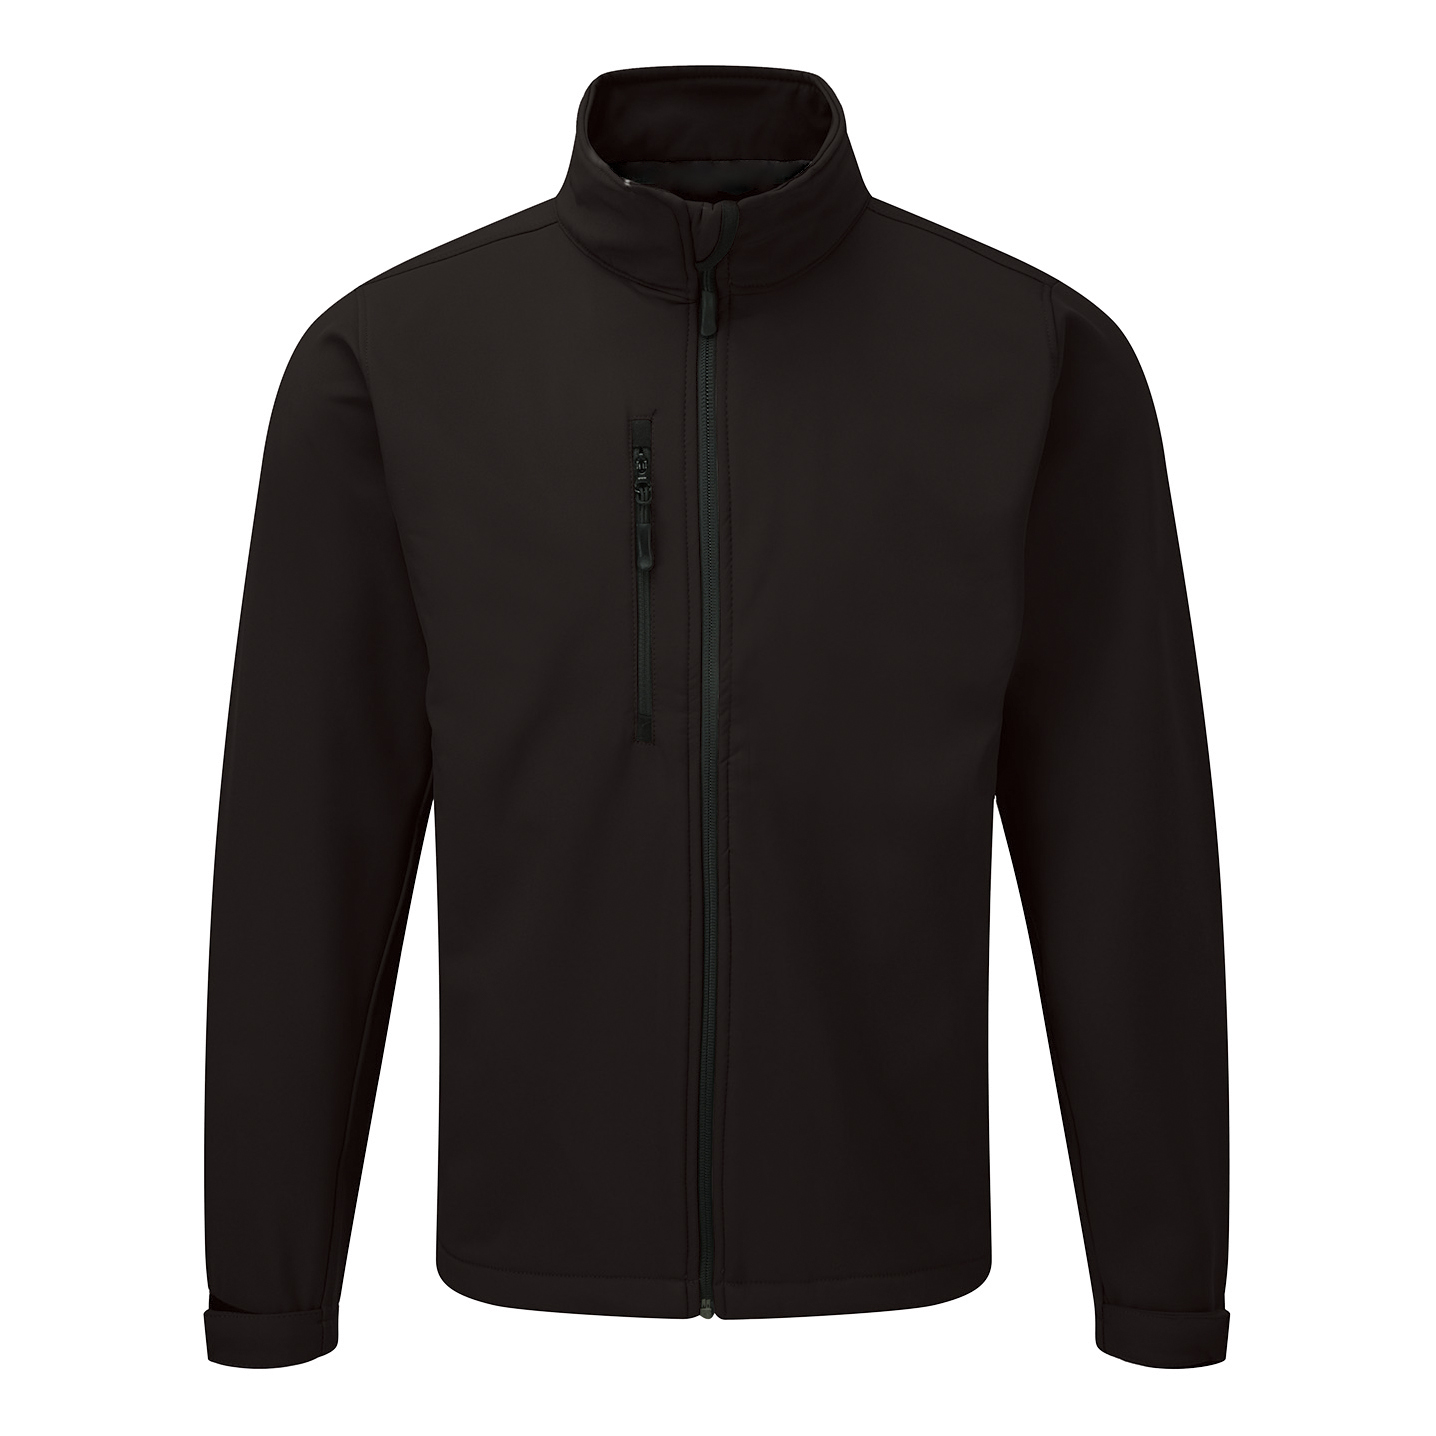 Jacket Soft Shell Water Resistant Breathable 320gsm Size 5XL Black